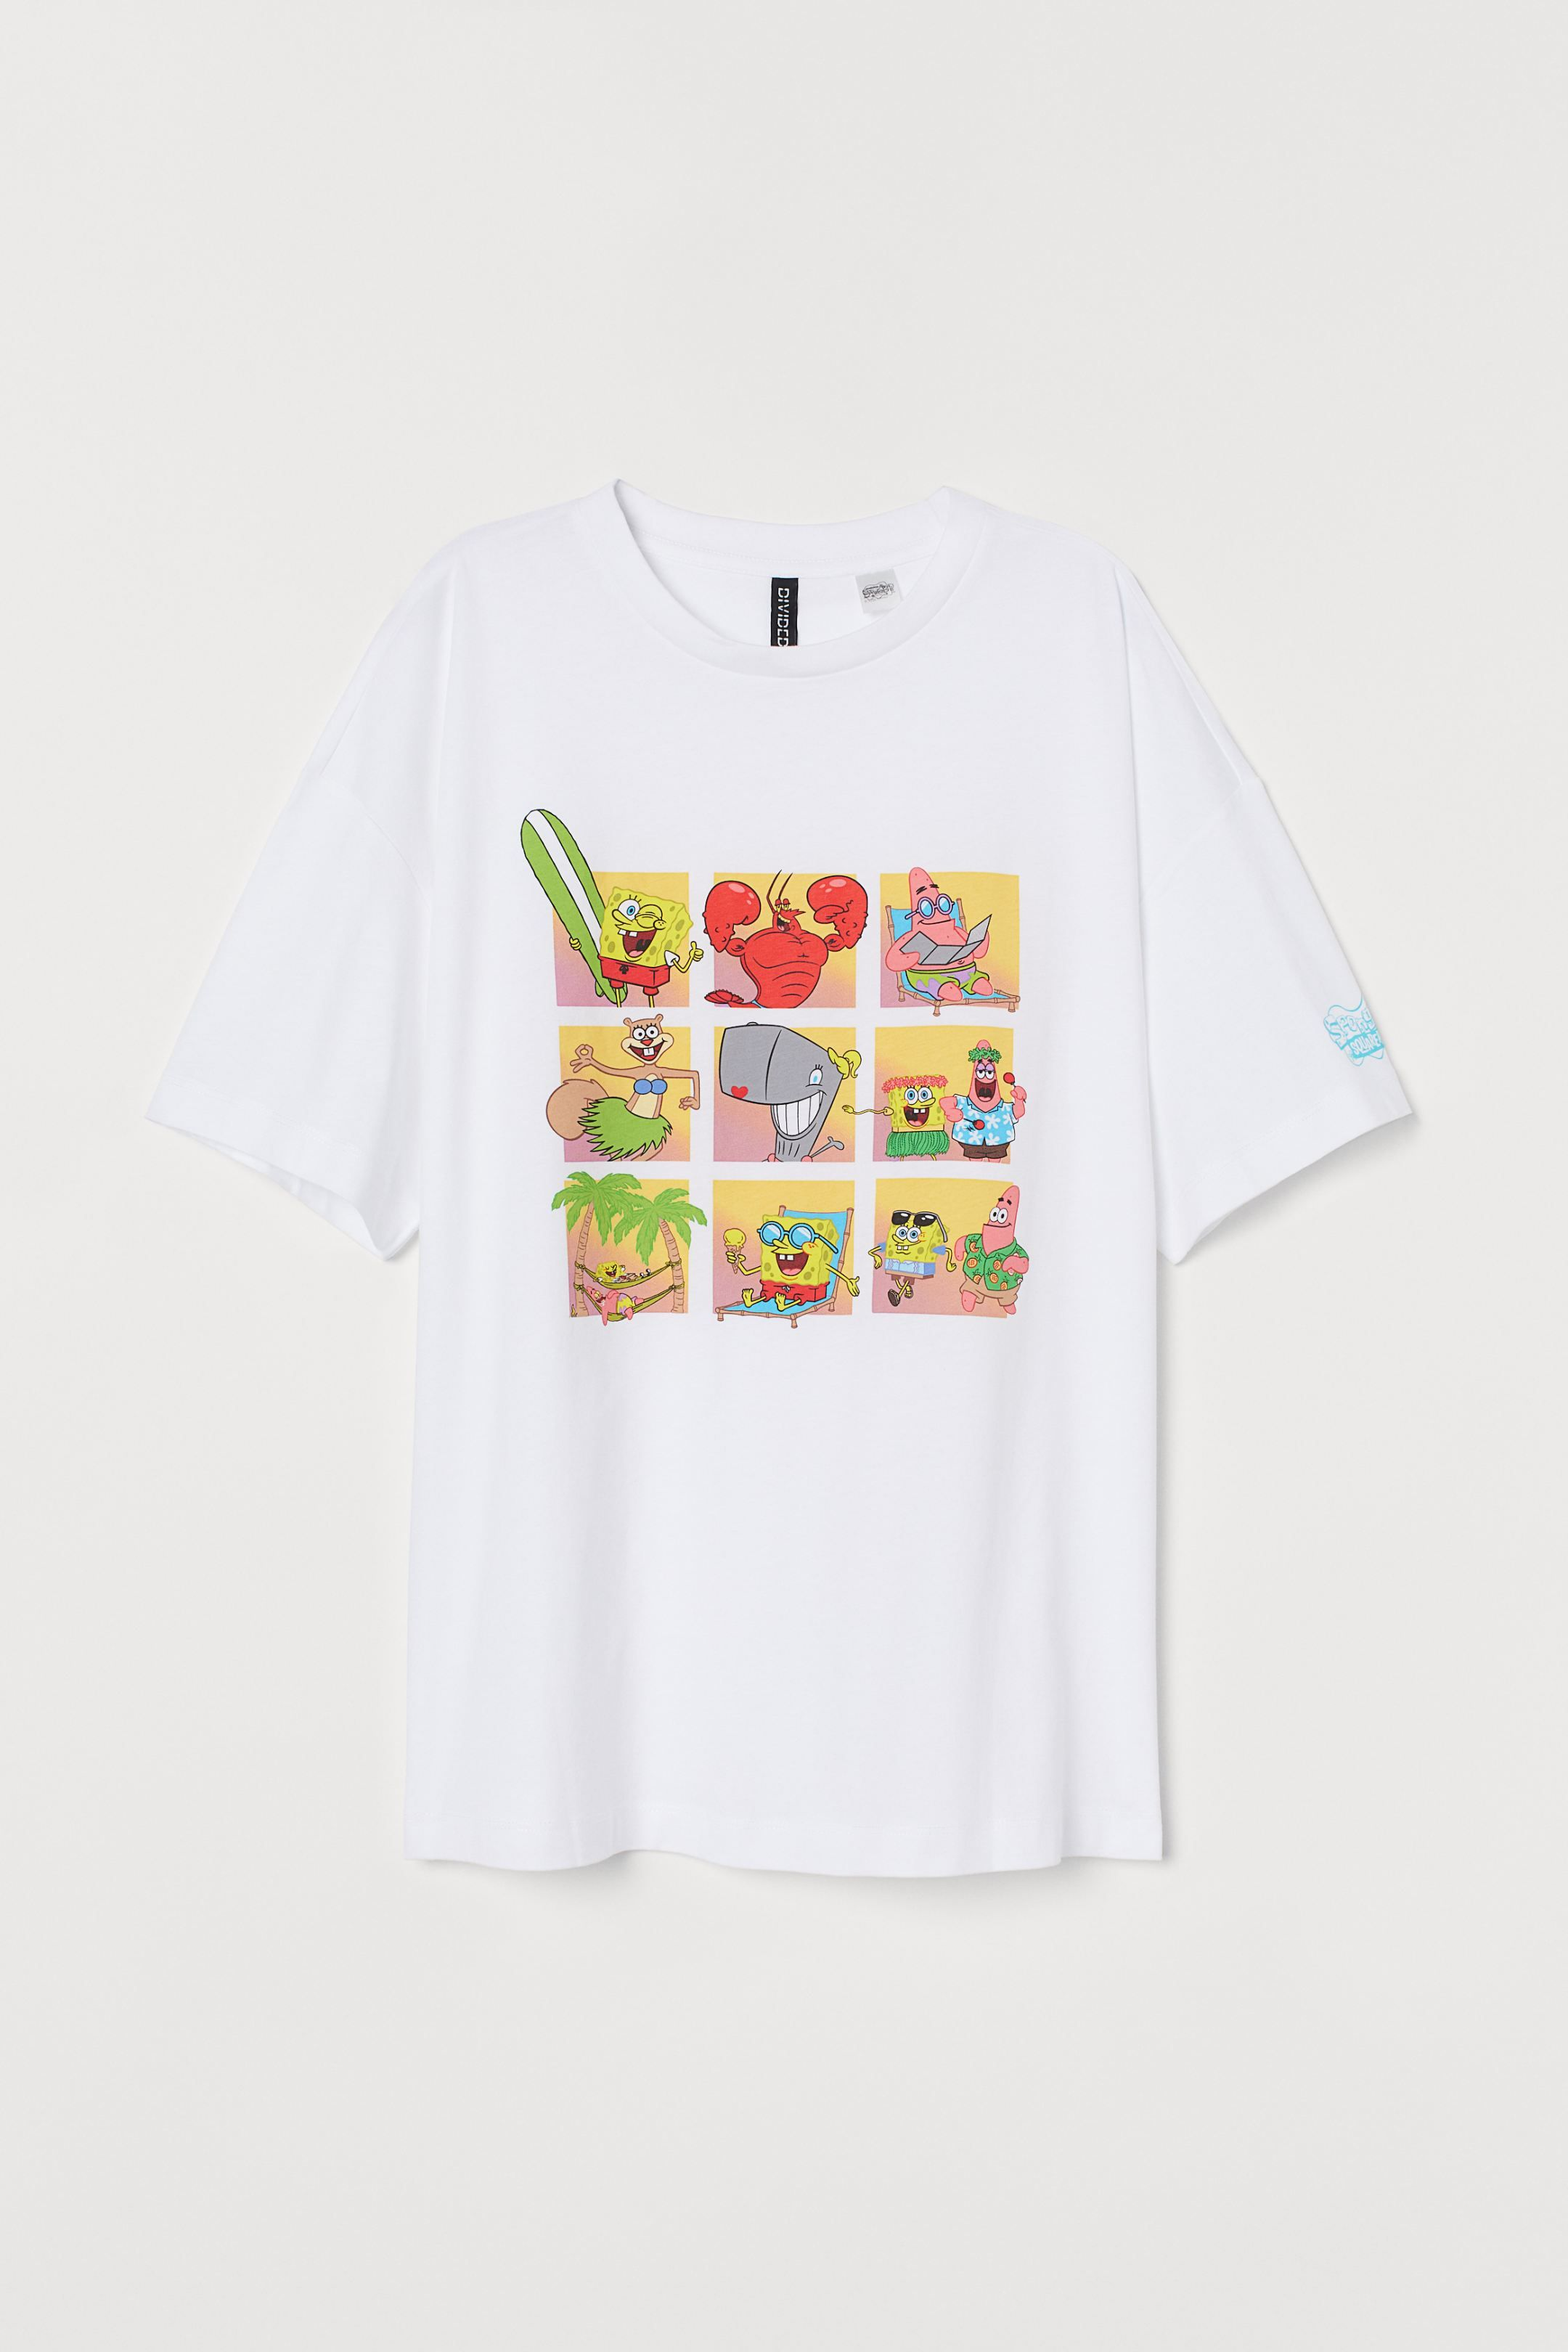 Printed T Shirt White Spongebob Squarepants H M In 2020 Paint Shirts Print T Shirt Printed Shirts